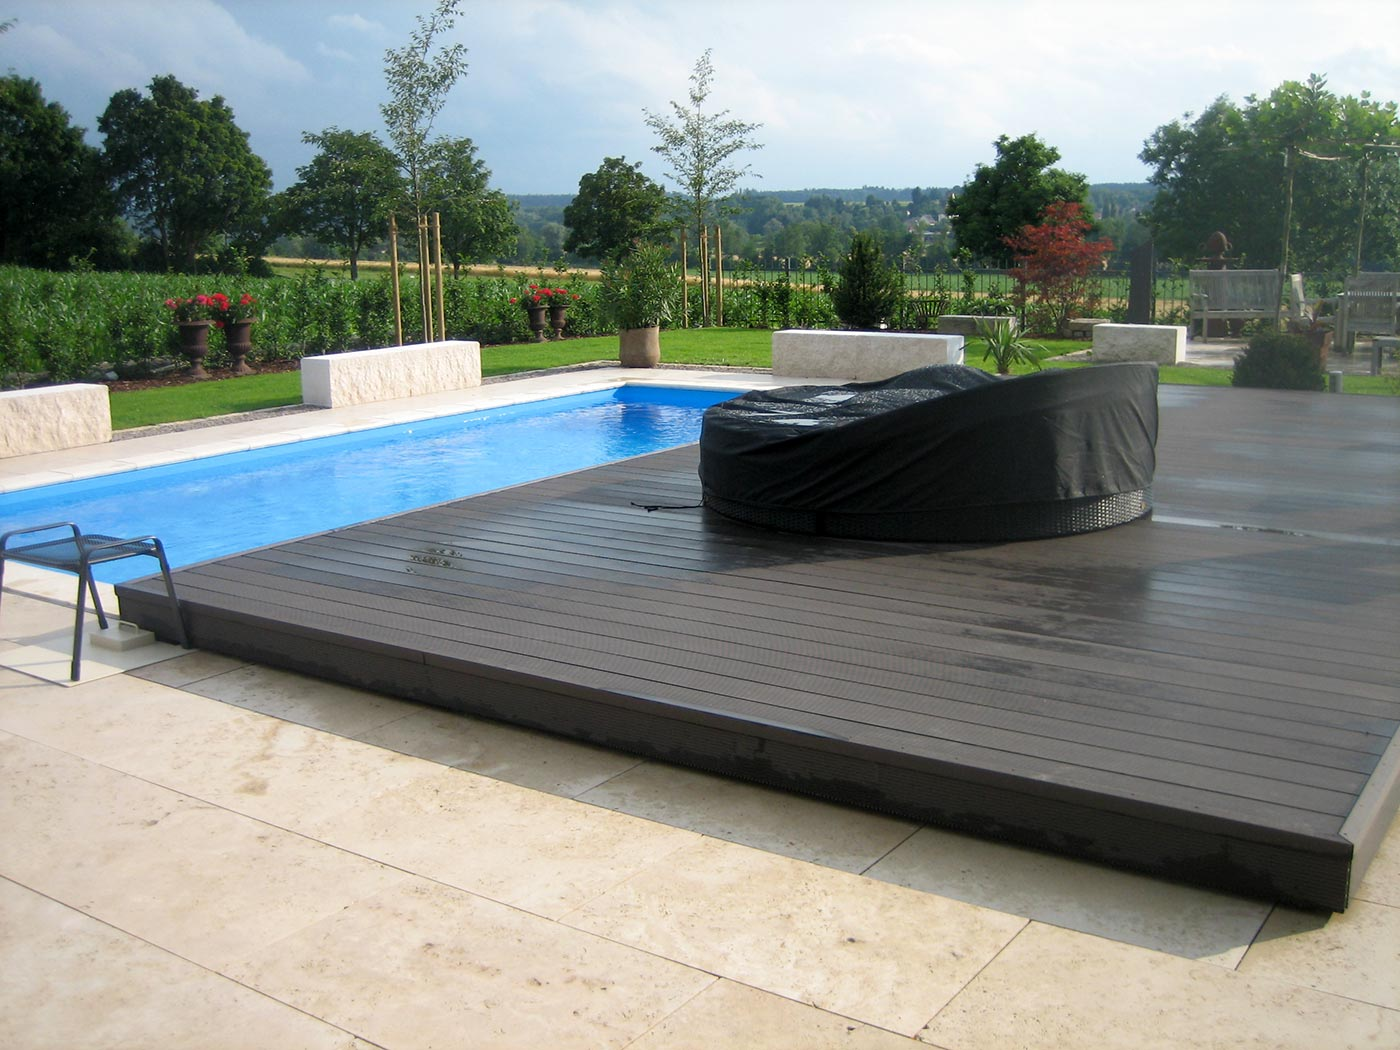 pooldecks das fahrbare pooldeck als poolabdeckung f r. Black Bedroom Furniture Sets. Home Design Ideas